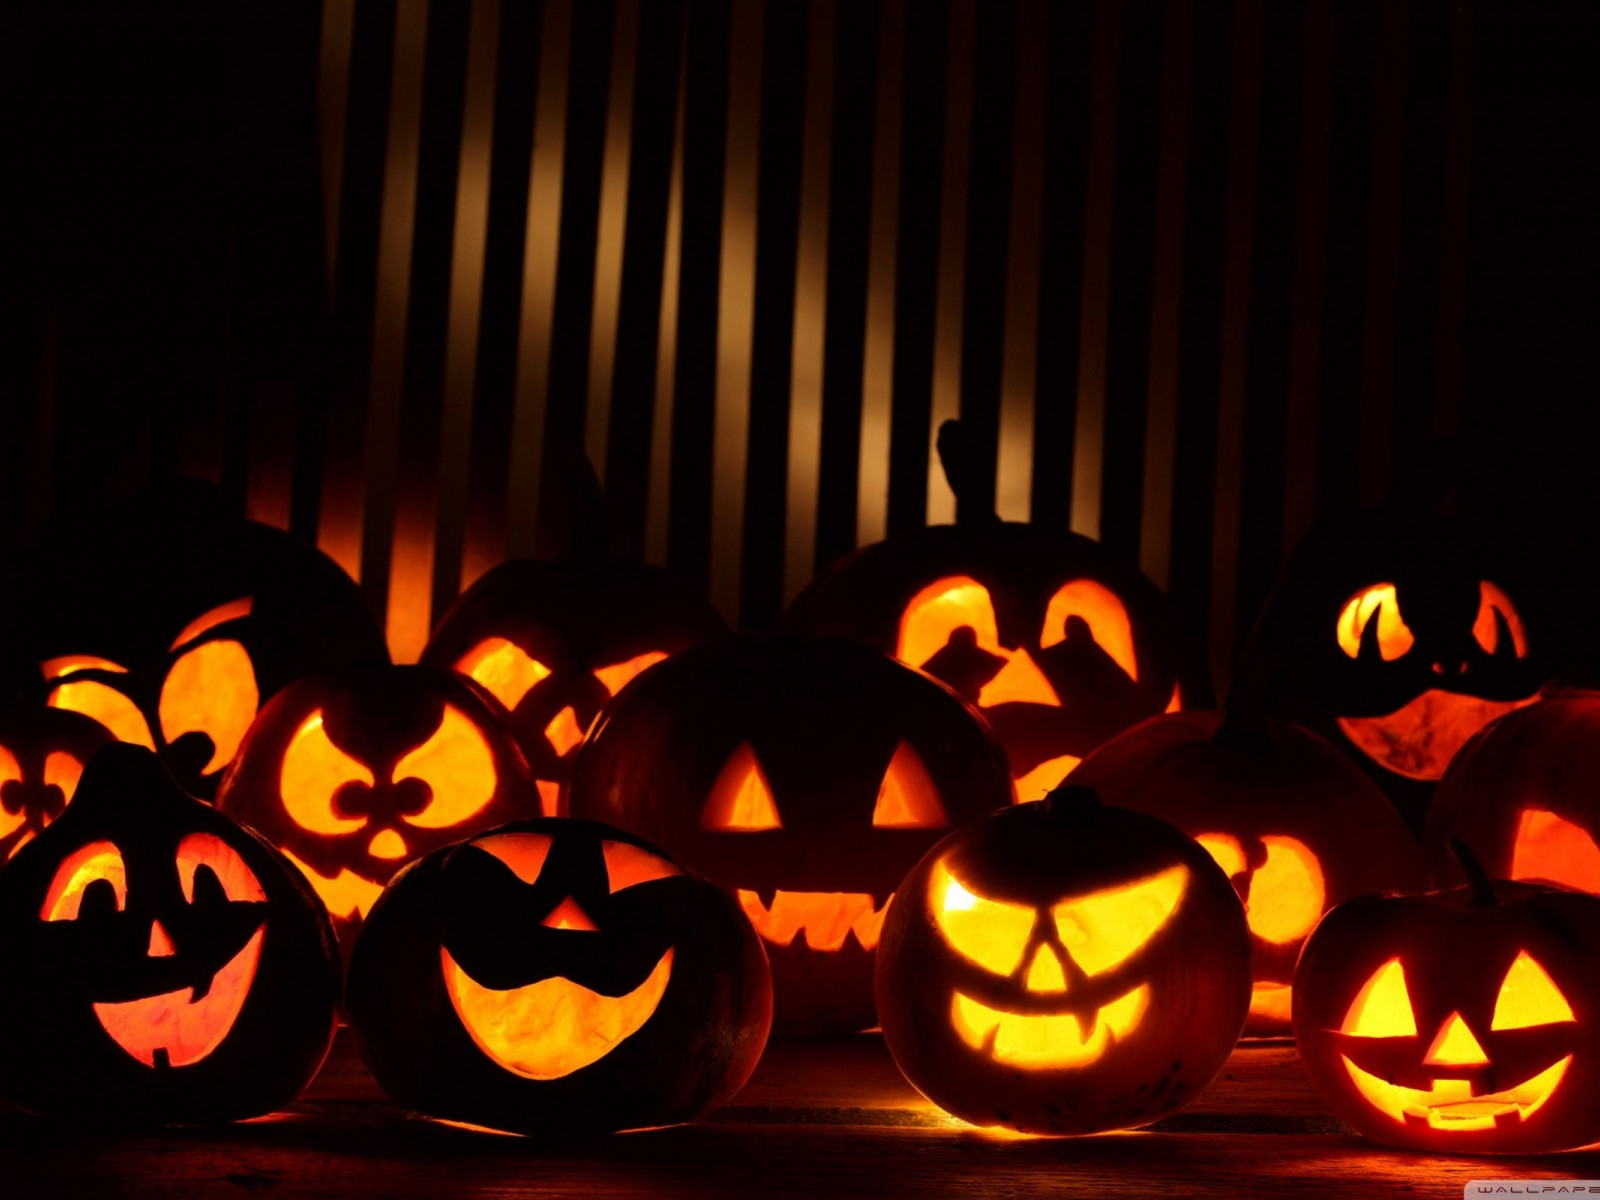 Happy Halloween 2 Wallpaper, - Wallpaper - Wide HD Wallpapers